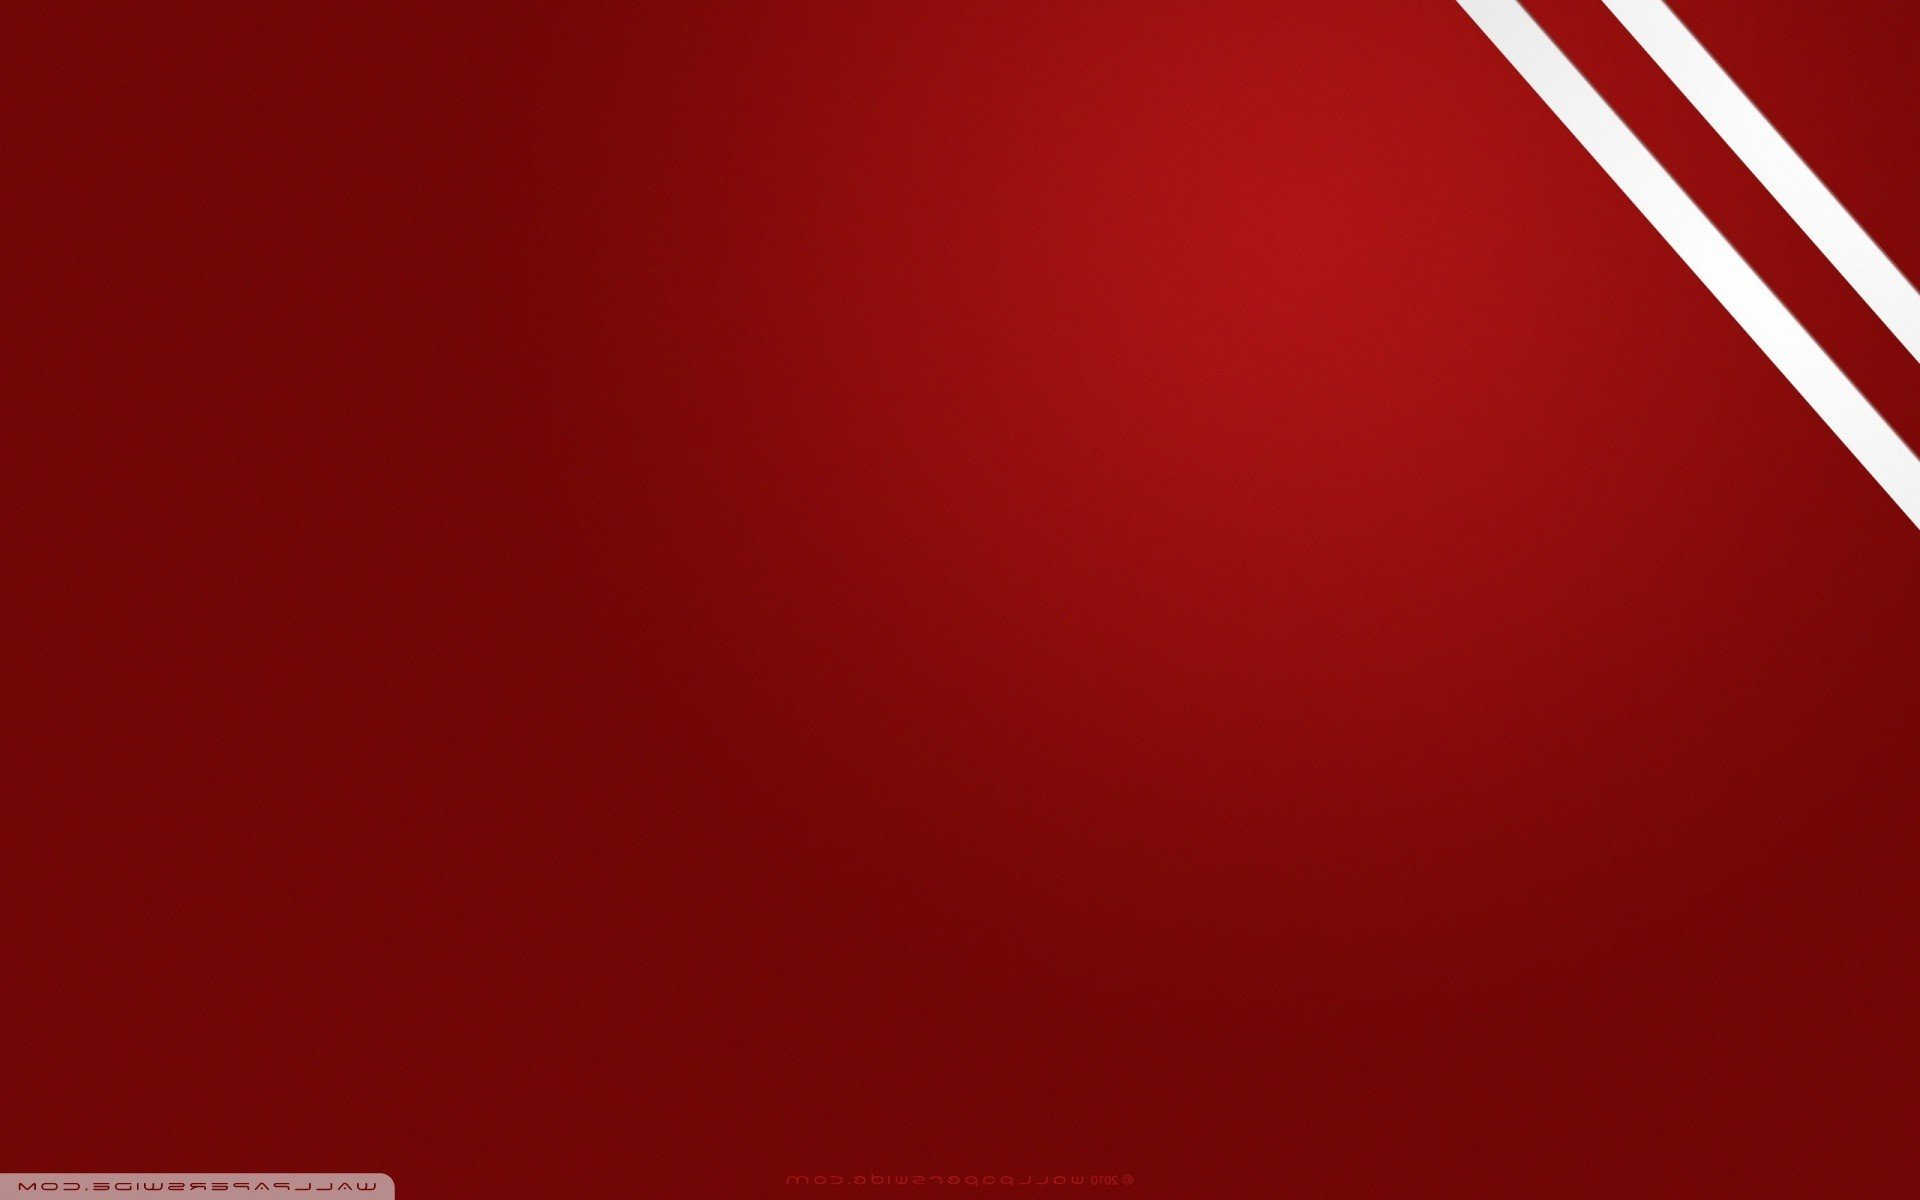 Red and white wallpaper backgrounds wallpapersafari - White background wallpaper ...